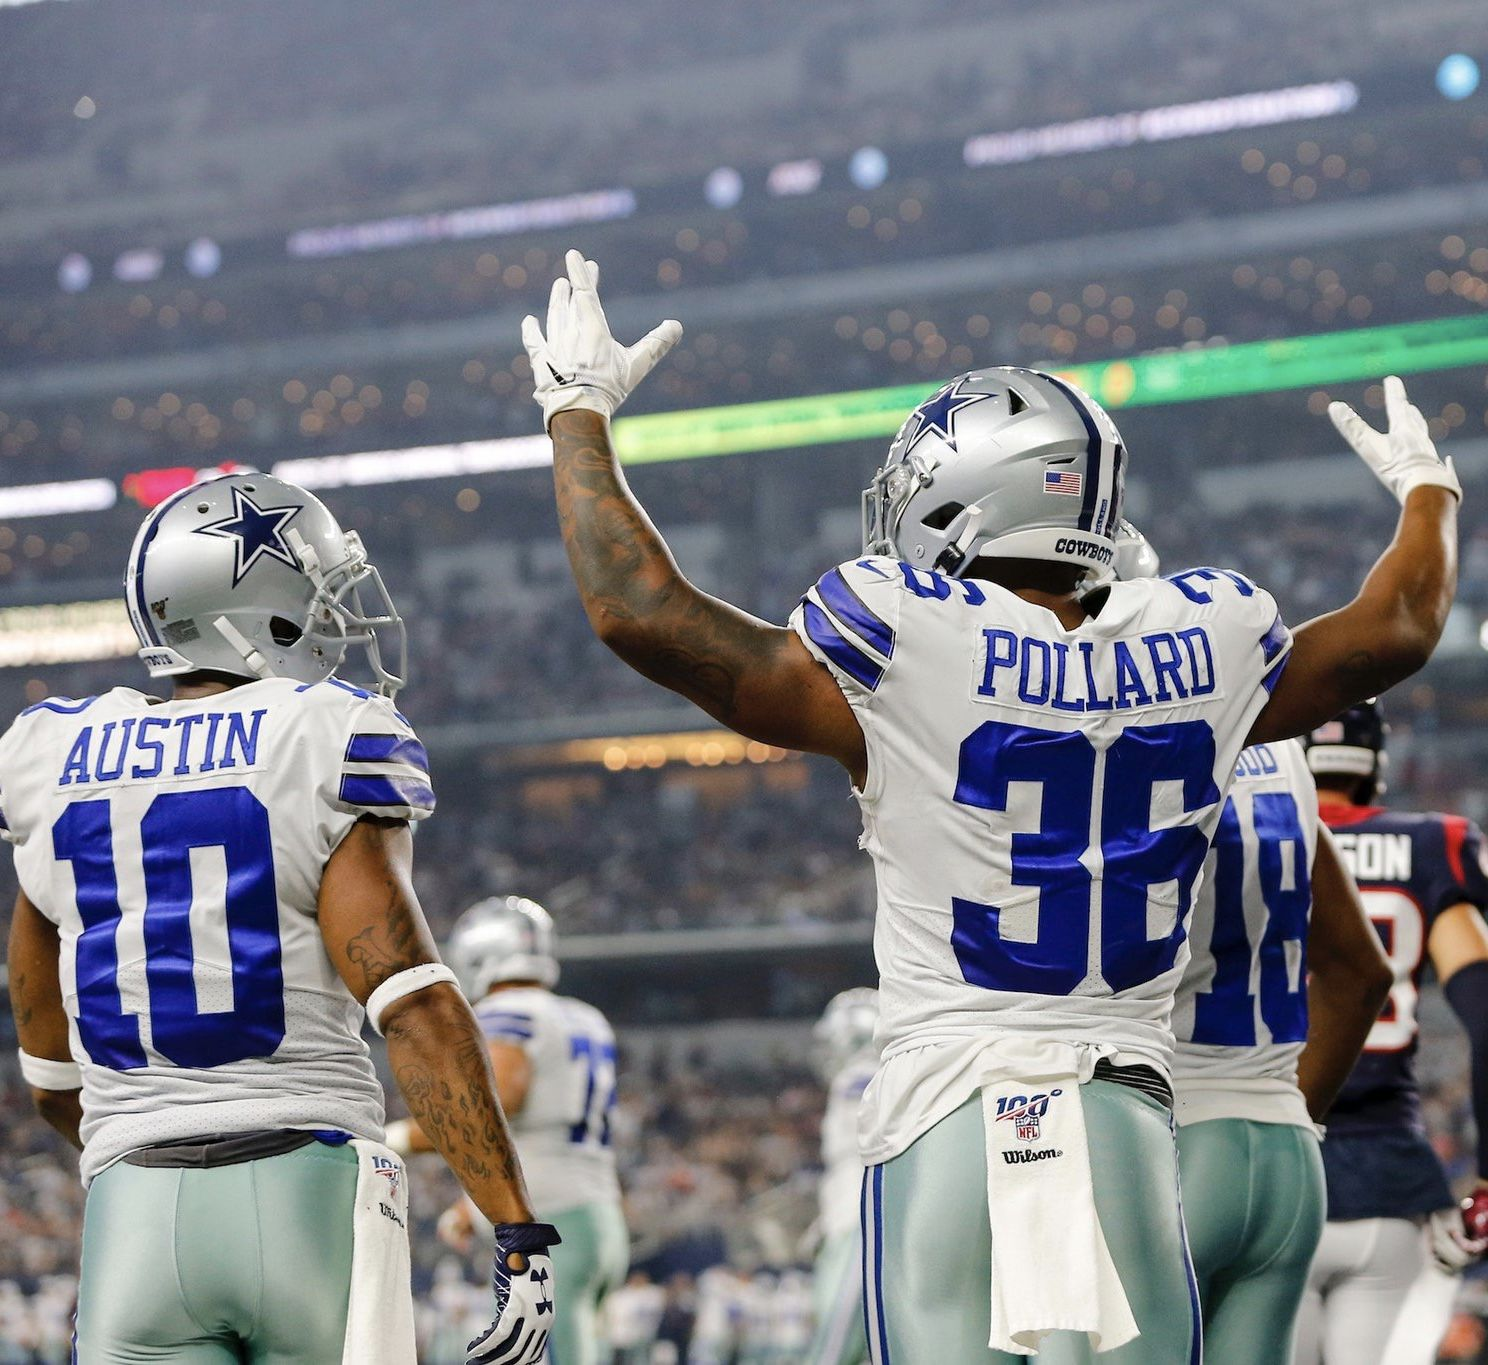 Pin by Doug Cameron on Dallas Cowboys 2019 (With images